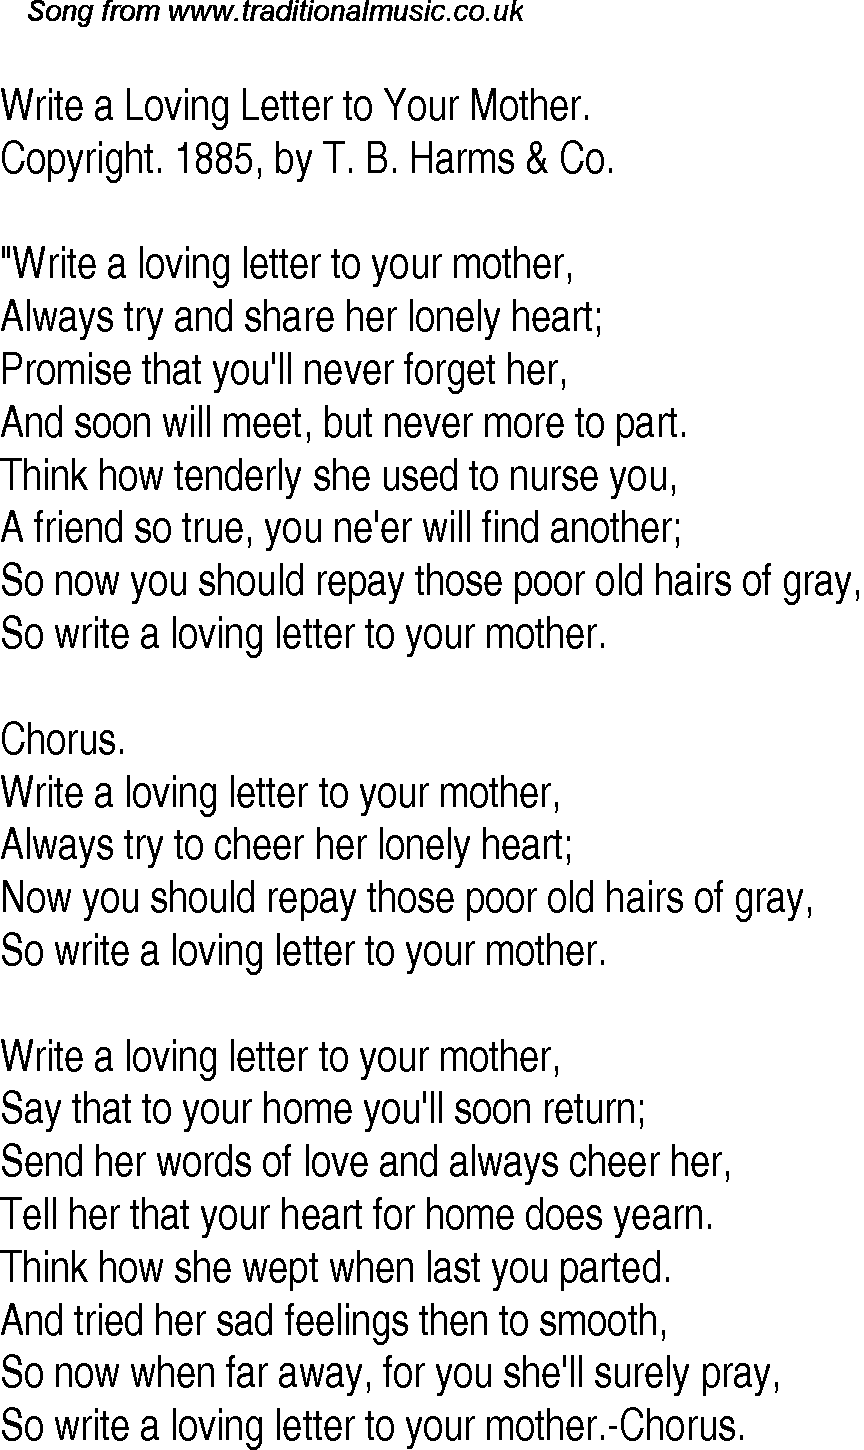 Old Time Song Lyrics For  Write A Loving Letter To Your Mother